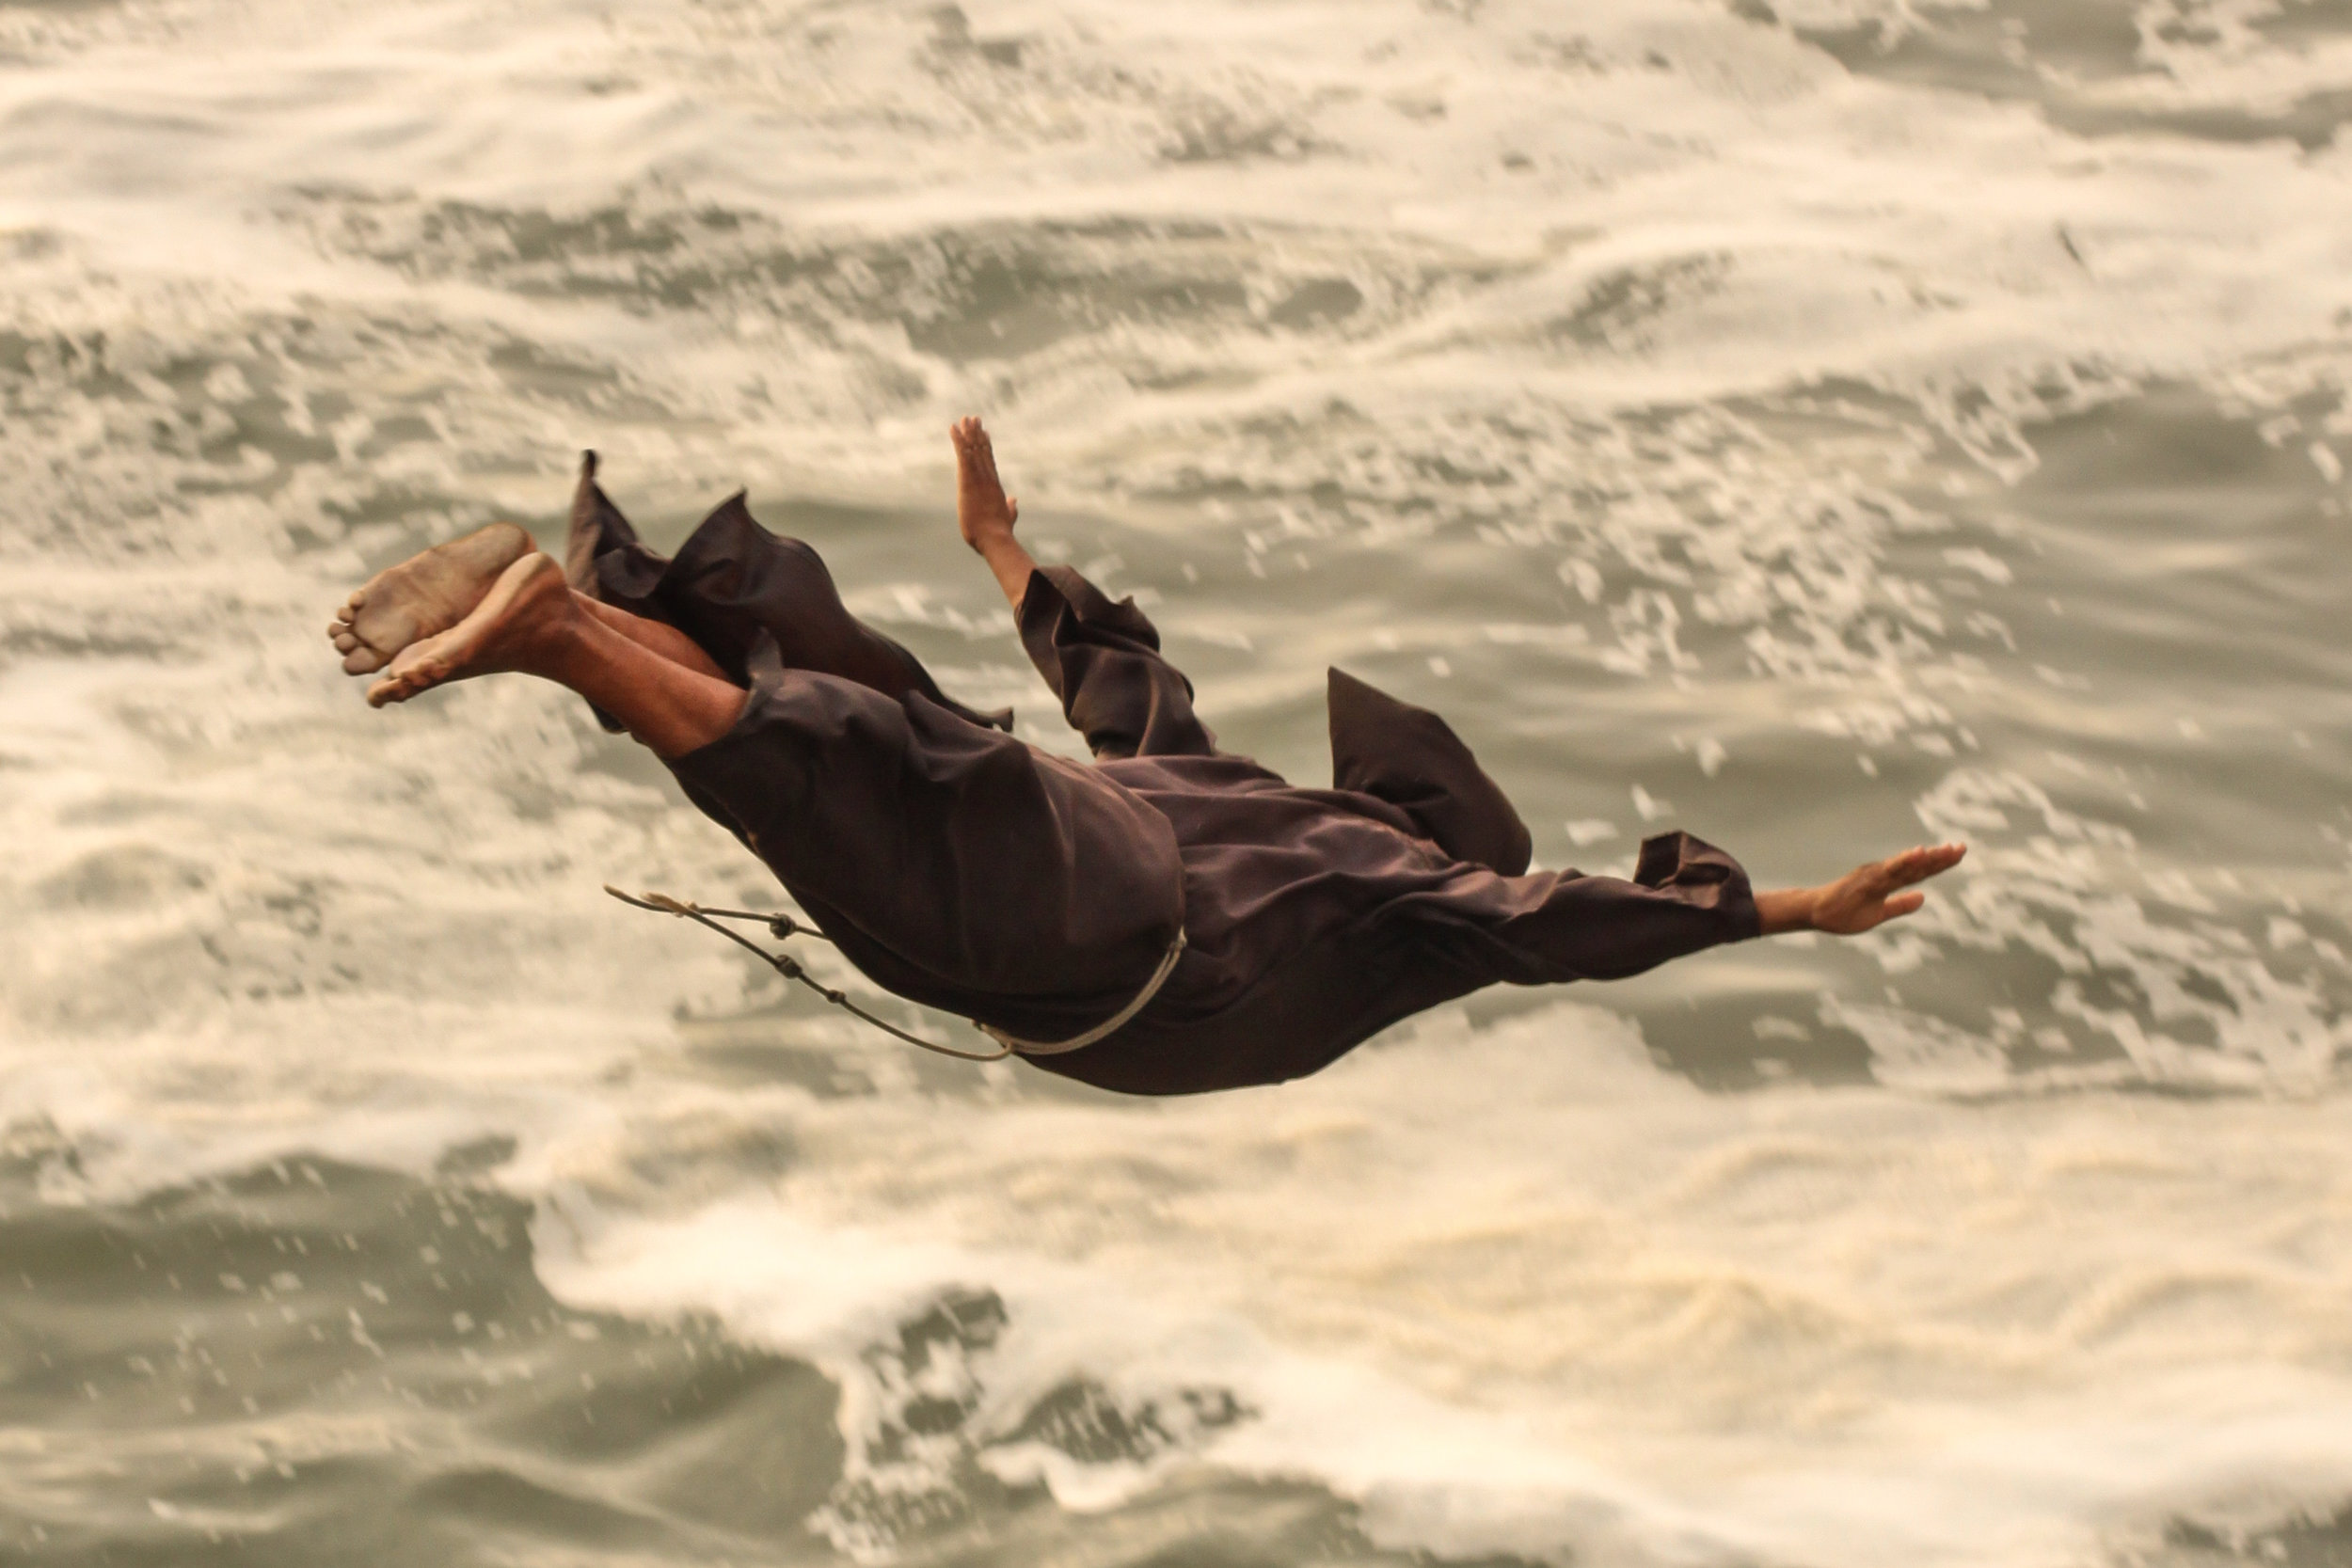 A Monk dives into the water below at El Salto de Fraile, Chorillos, Lima, Peru.